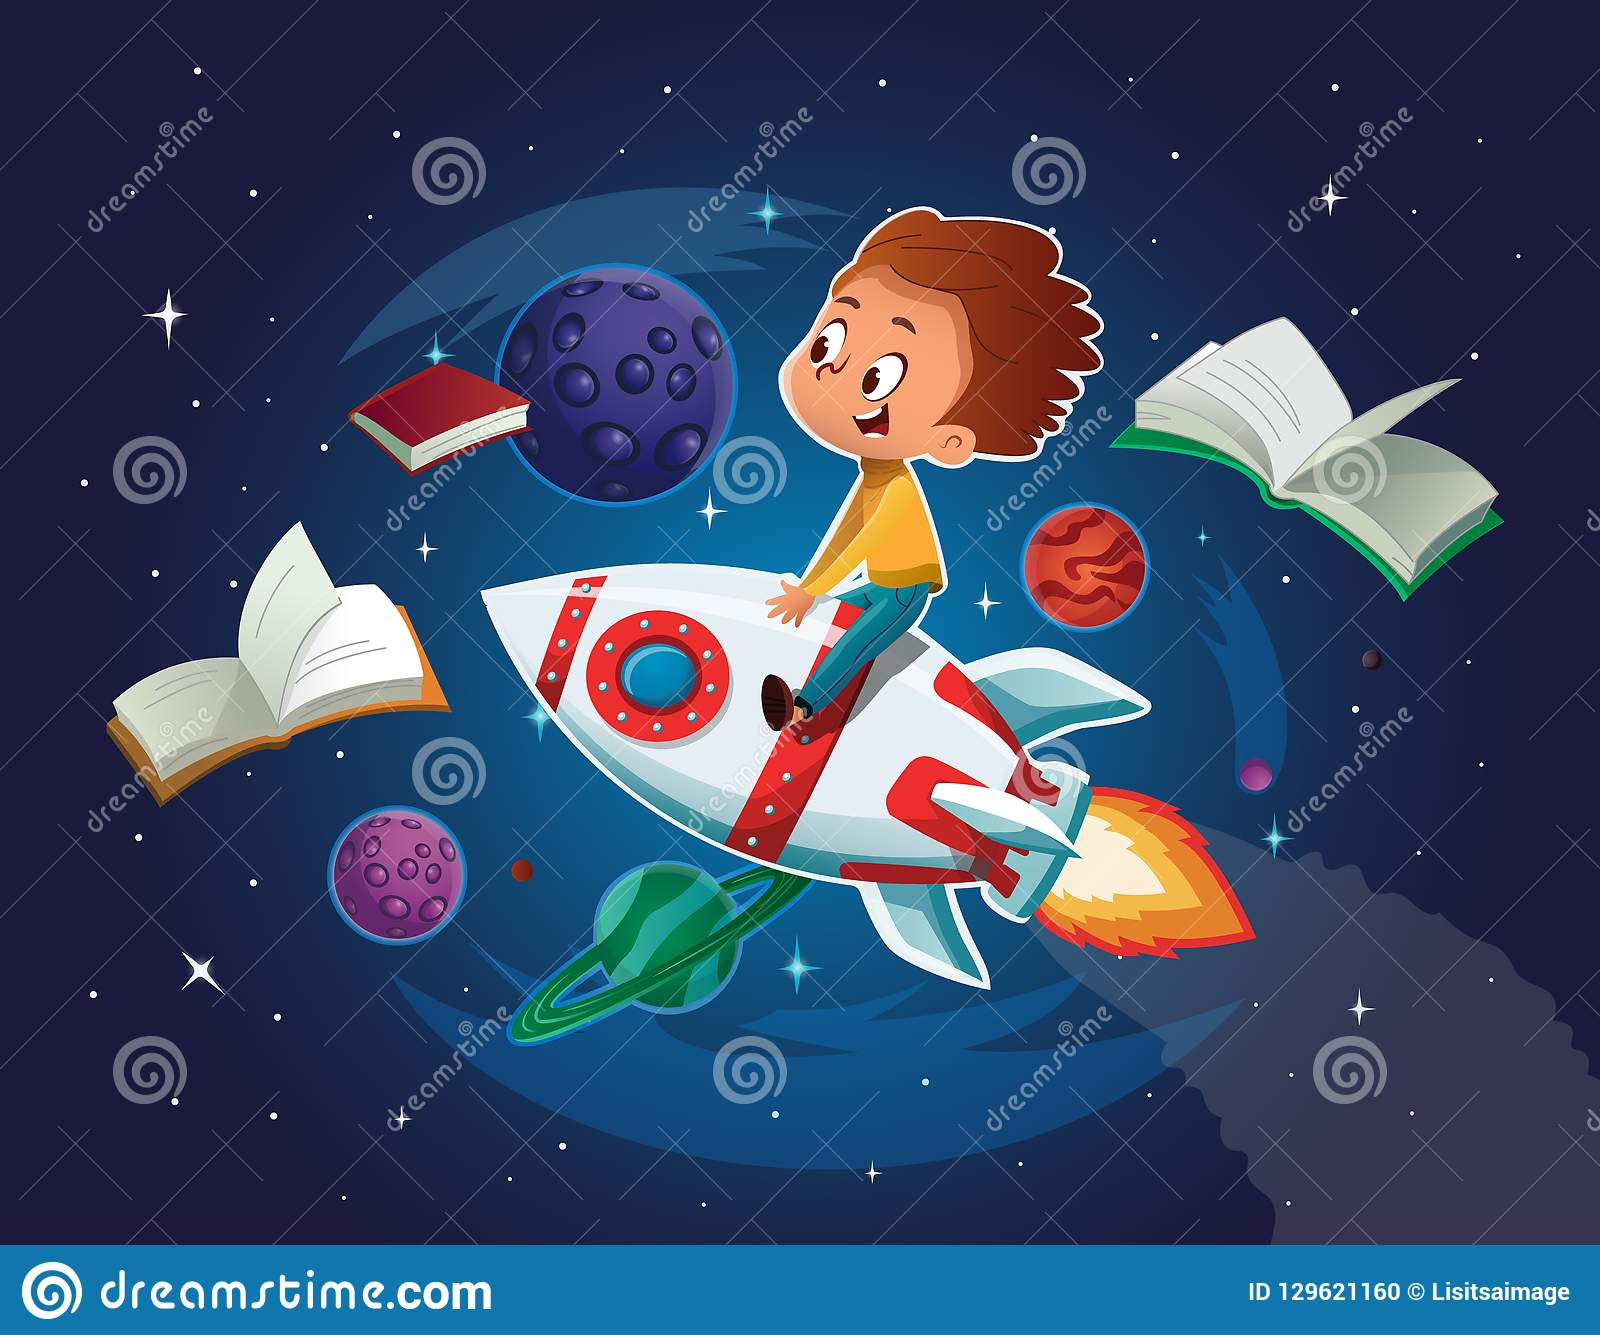 Happy Boy playing and imagine himself in space driving an toy space rocket. Books, planets, rocket and stars in a